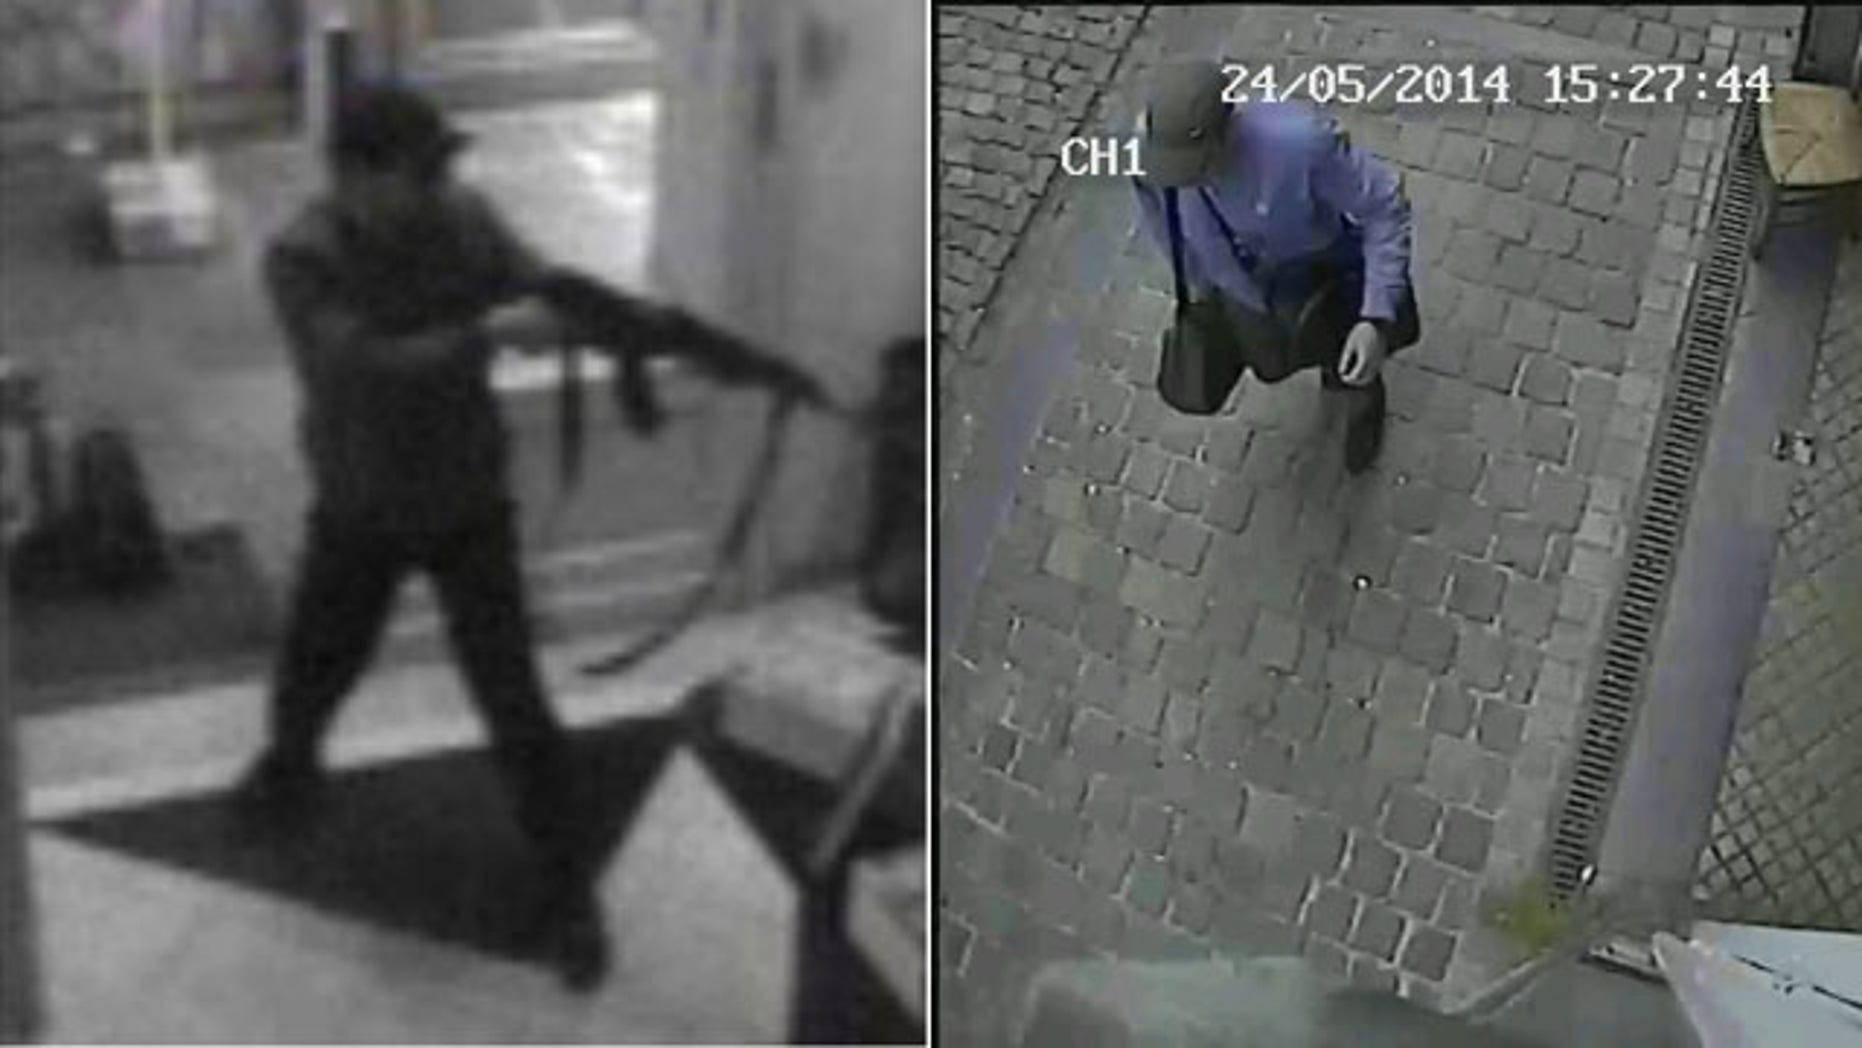 May 25, 2014: These photos taken from surveillance footage and released by Belgian Federal Police show a man shooting at the Jewish museum in Brussels, Belgium, on Saturday, May 24, 2014. (AP Photo/Belgian Federal Police)